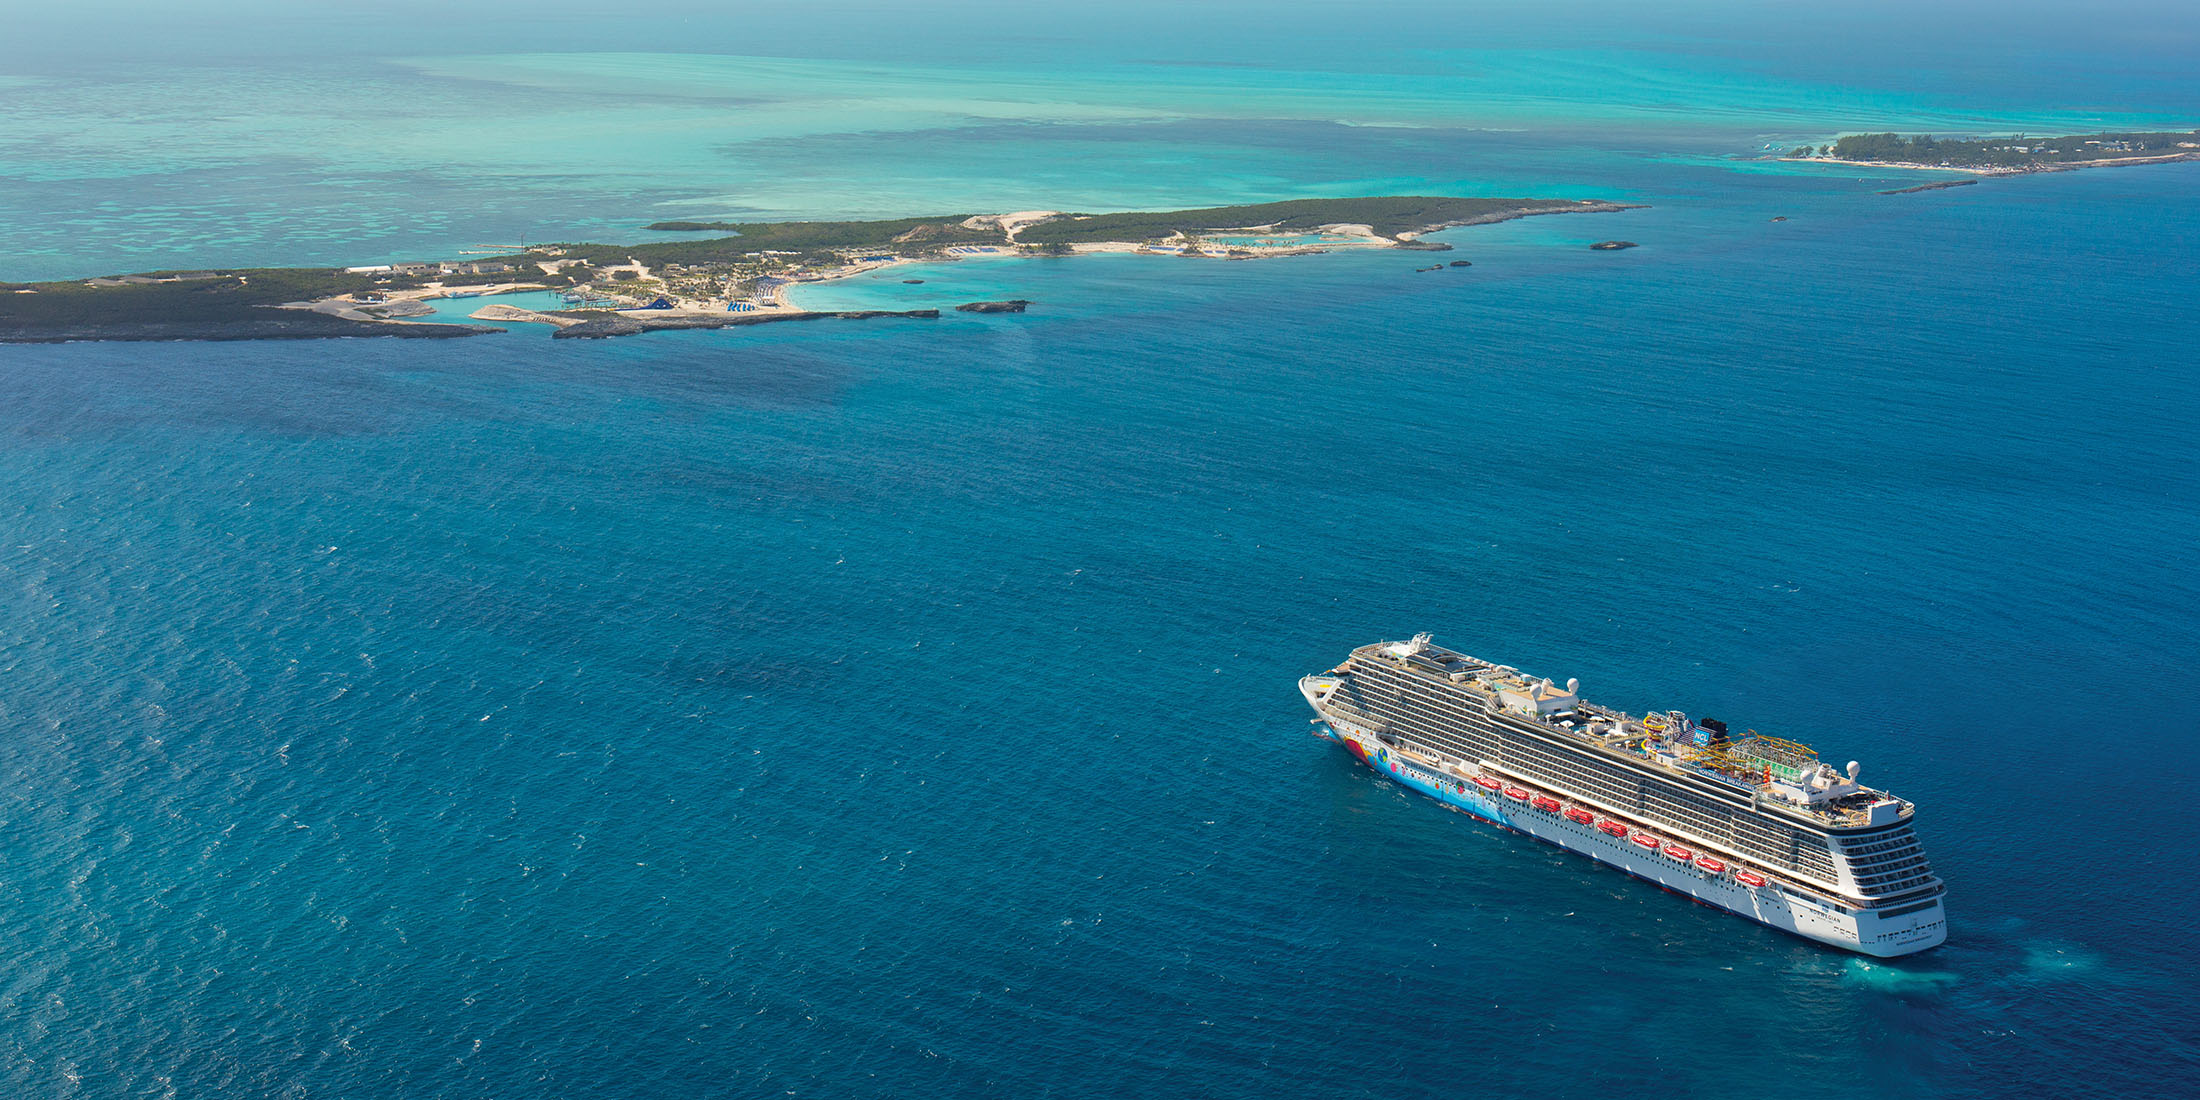 Take A Long Weekend To The Bahamas With Norwegian Cruise Line!